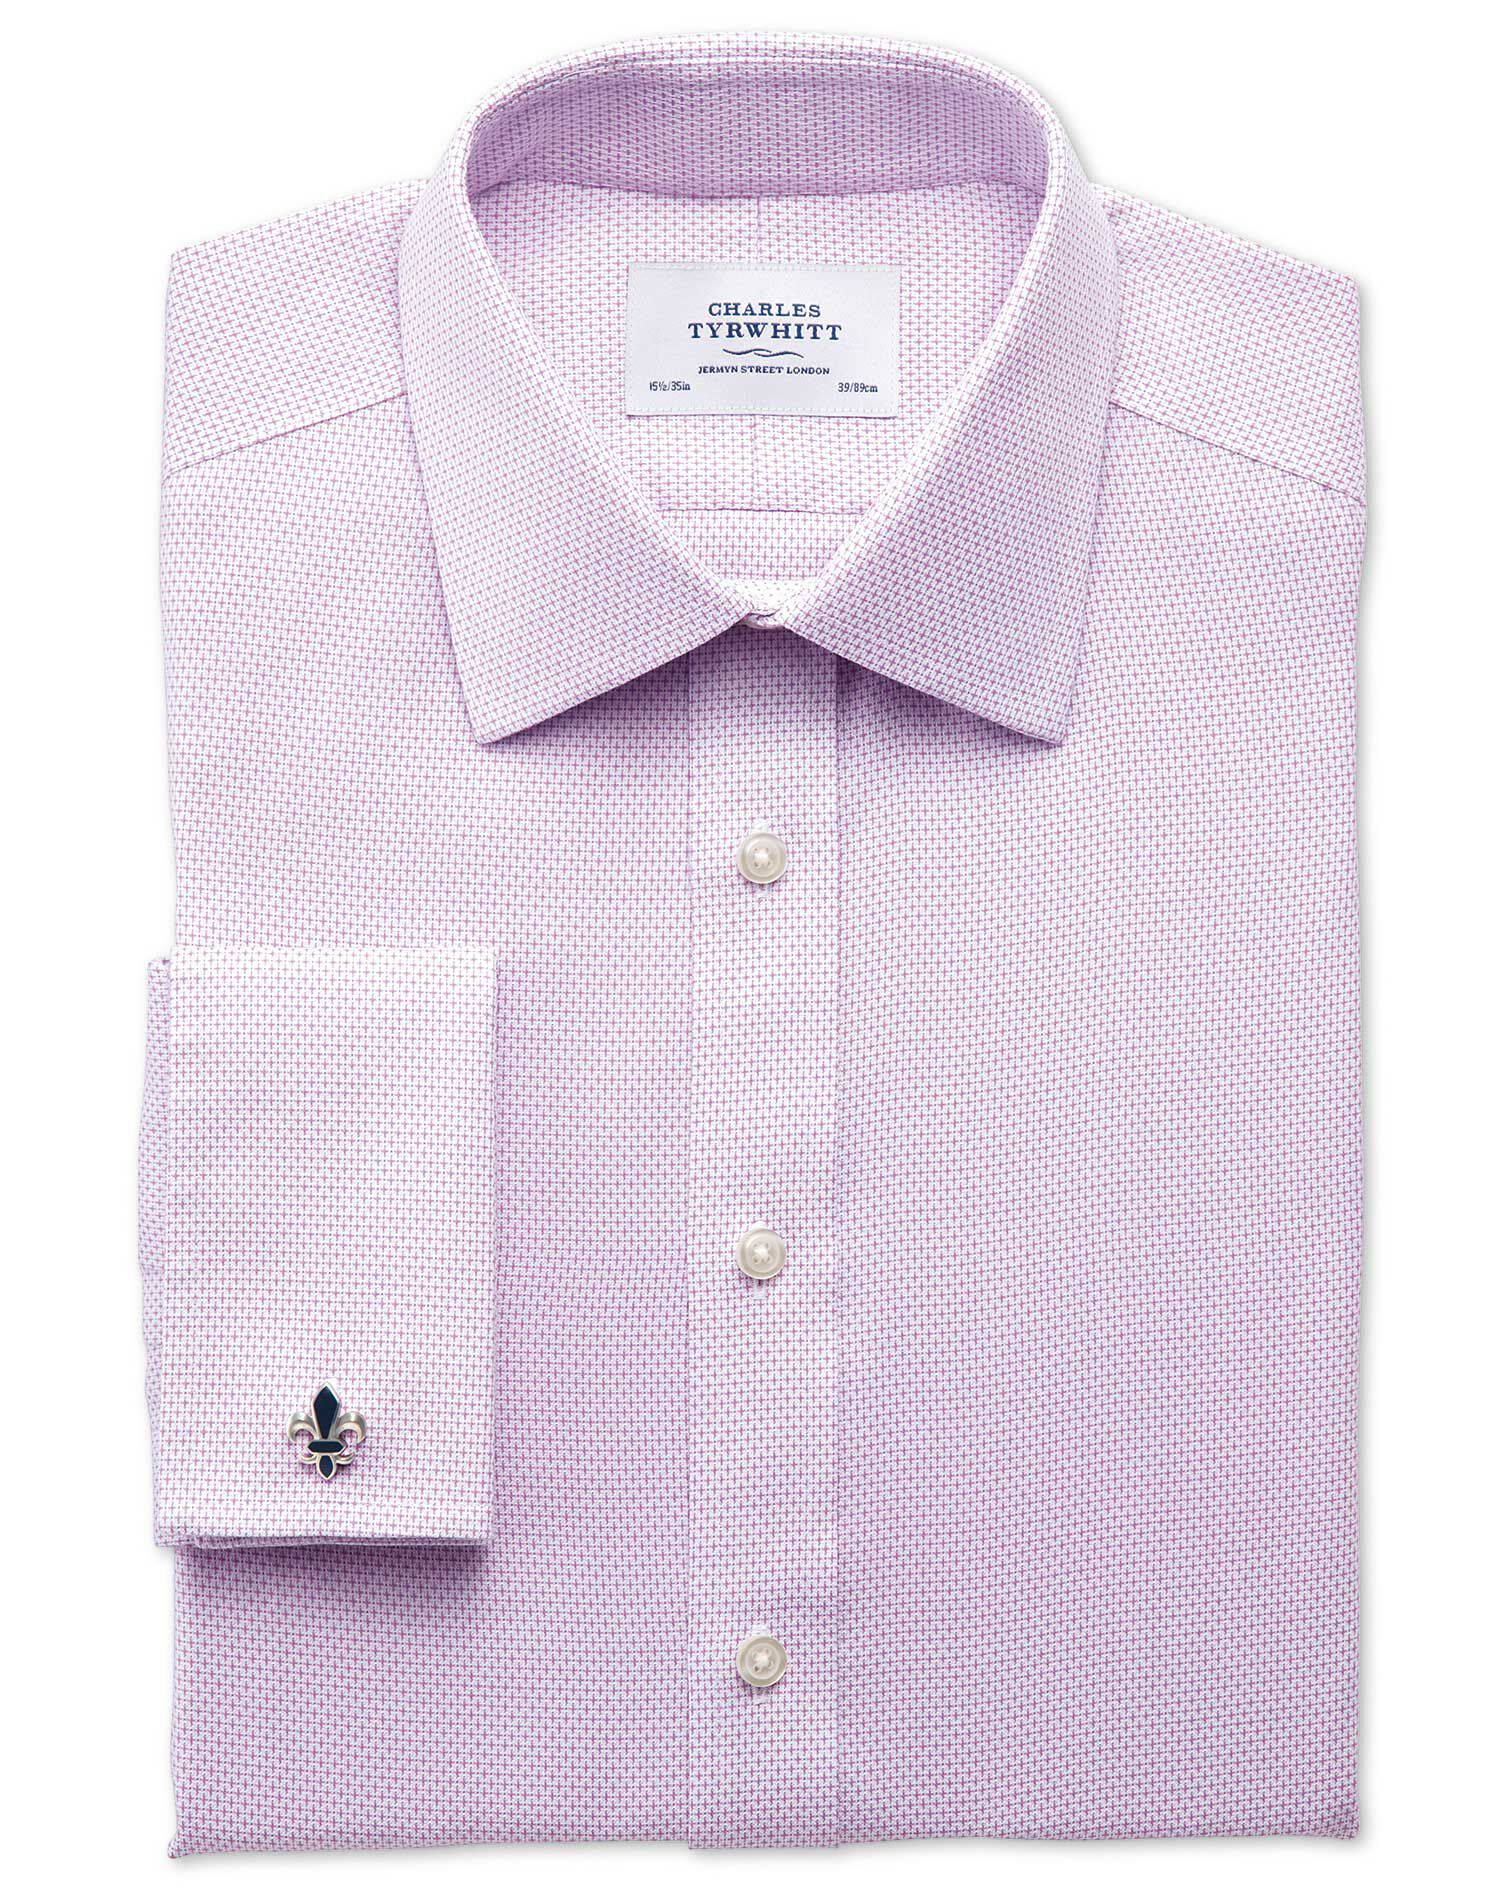 Classic Fit Non-Iron Imperial Weave Lilac Cotton Formal Shirt Double Cuff Size 19/38 by Charles Tyrw